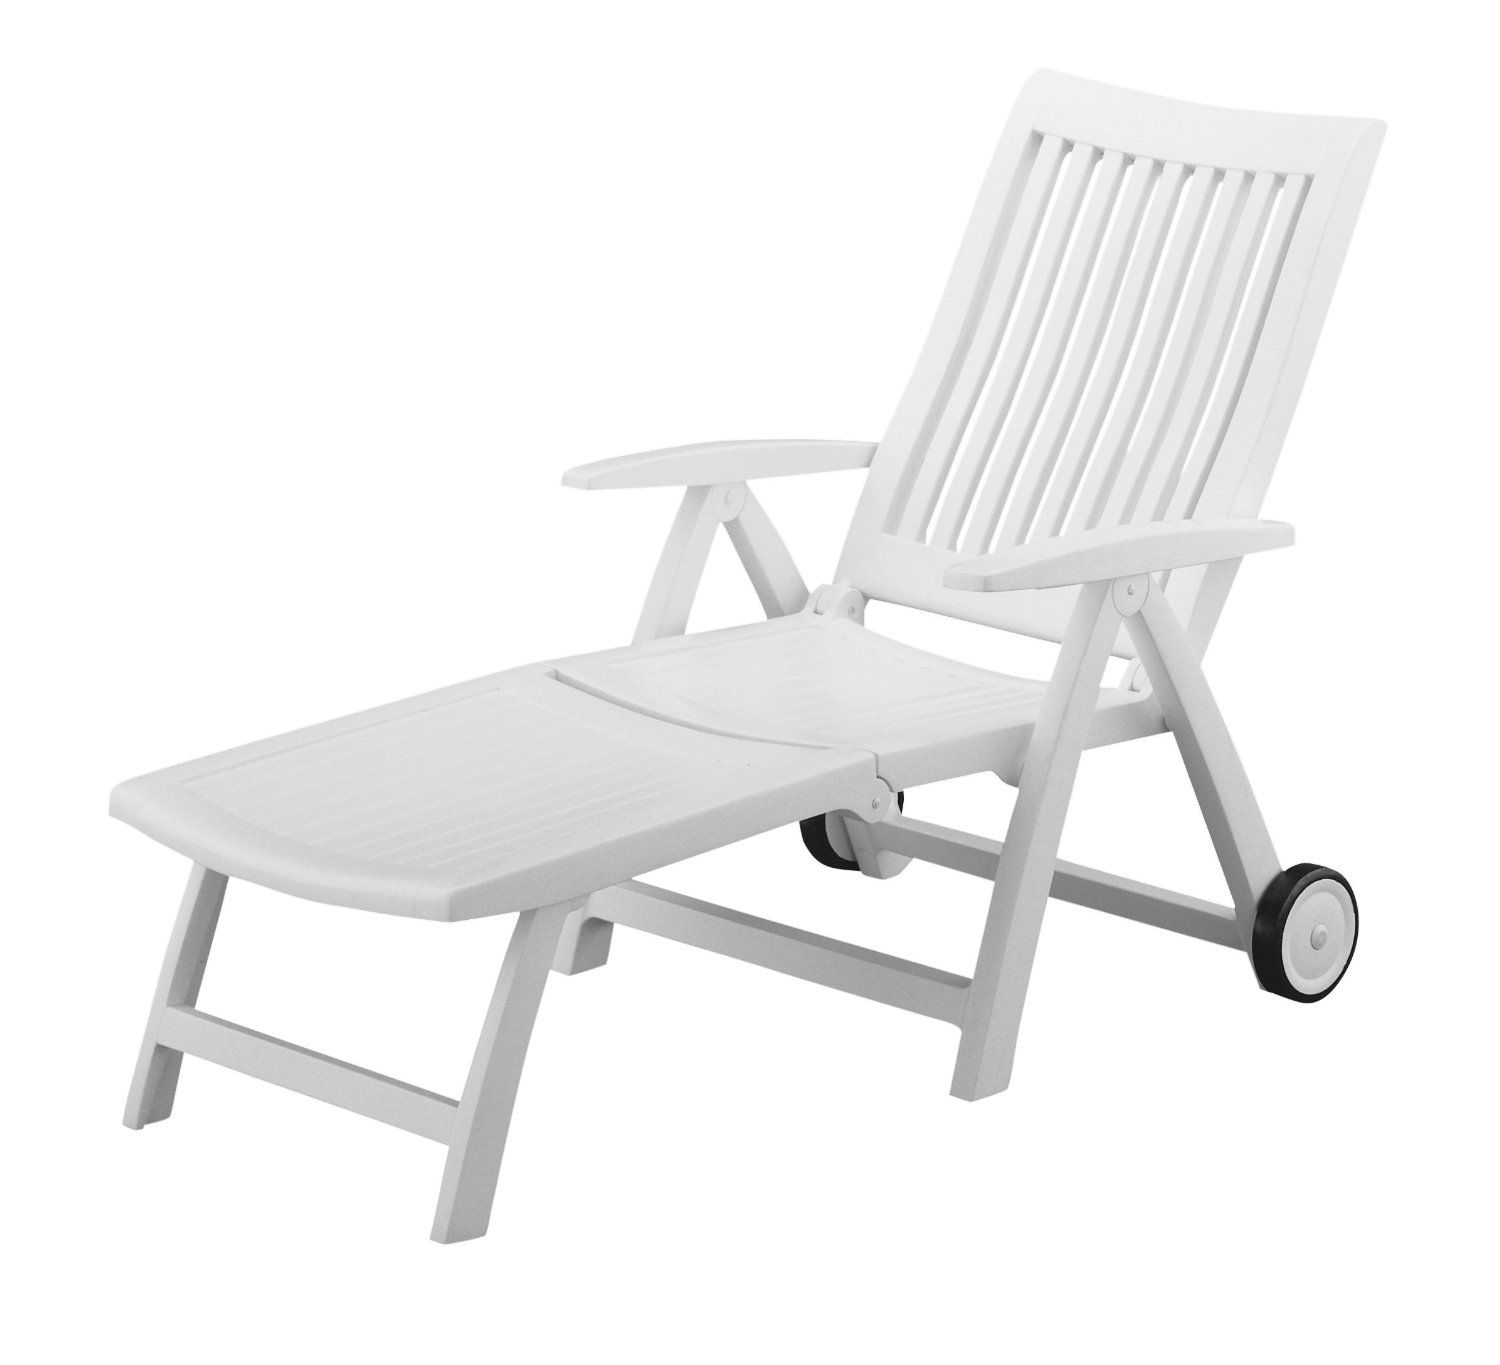 Kettler   1638 000   Roma Folding Chaise Outdoor Patio Furniture   White